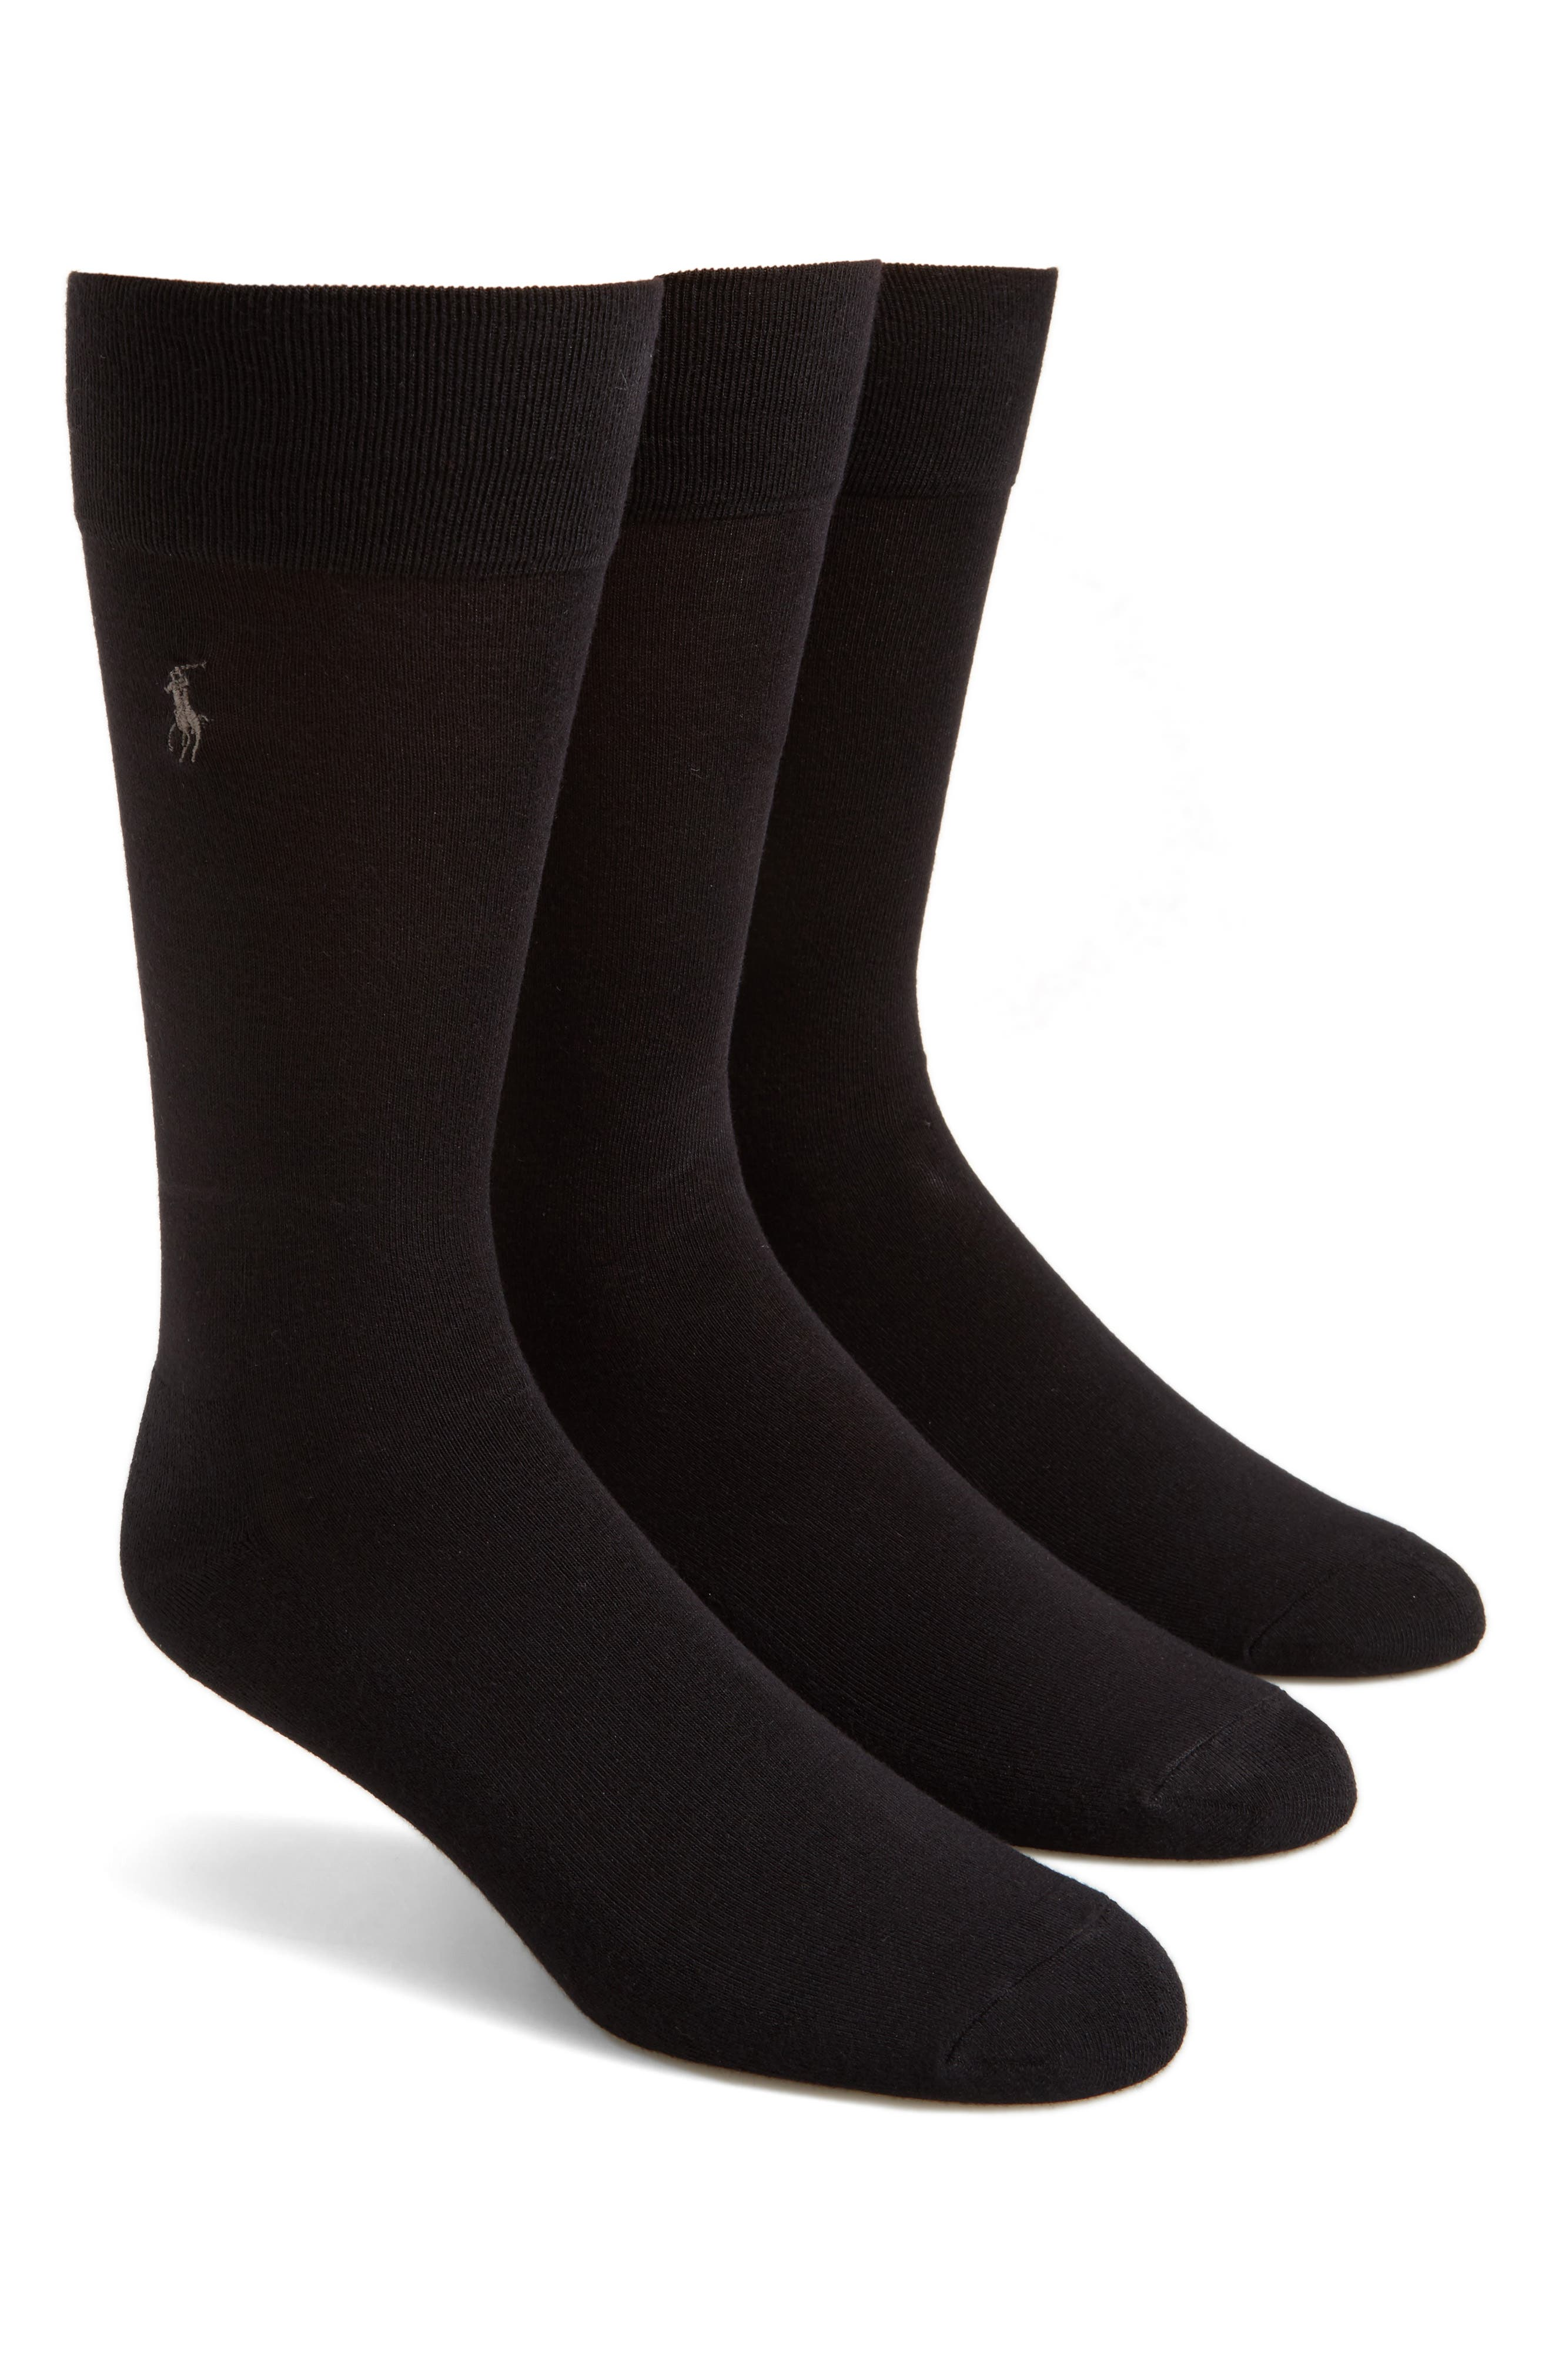 Main Image - Polo Ralph Lauren 3-Pack Socks